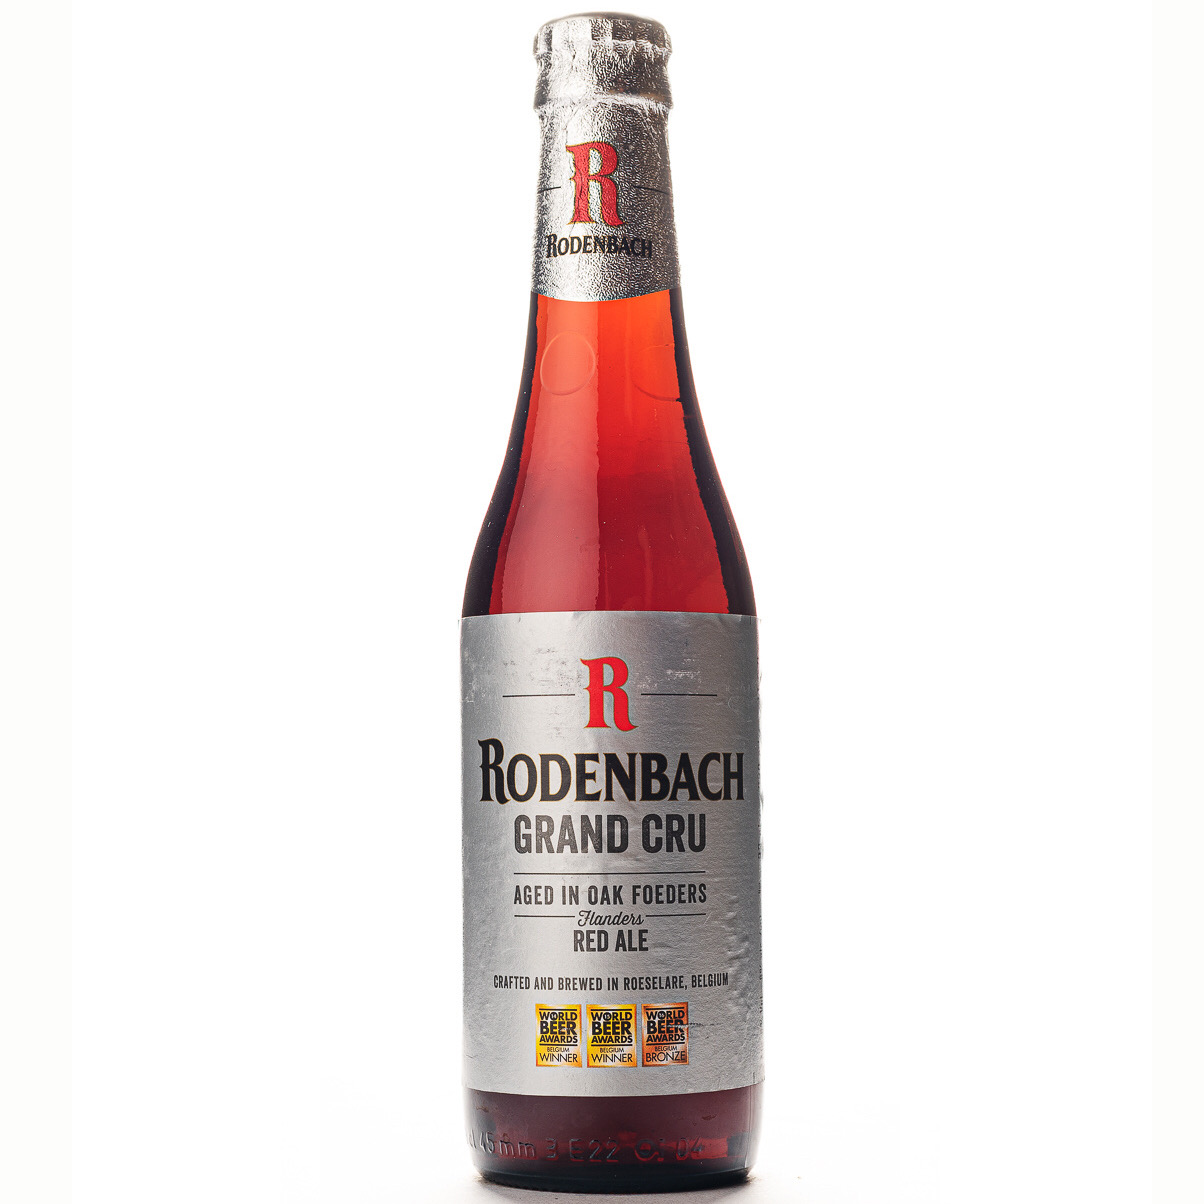 Rodenbach Grand Cru 6% 330ml Flemish Red Sour Ale